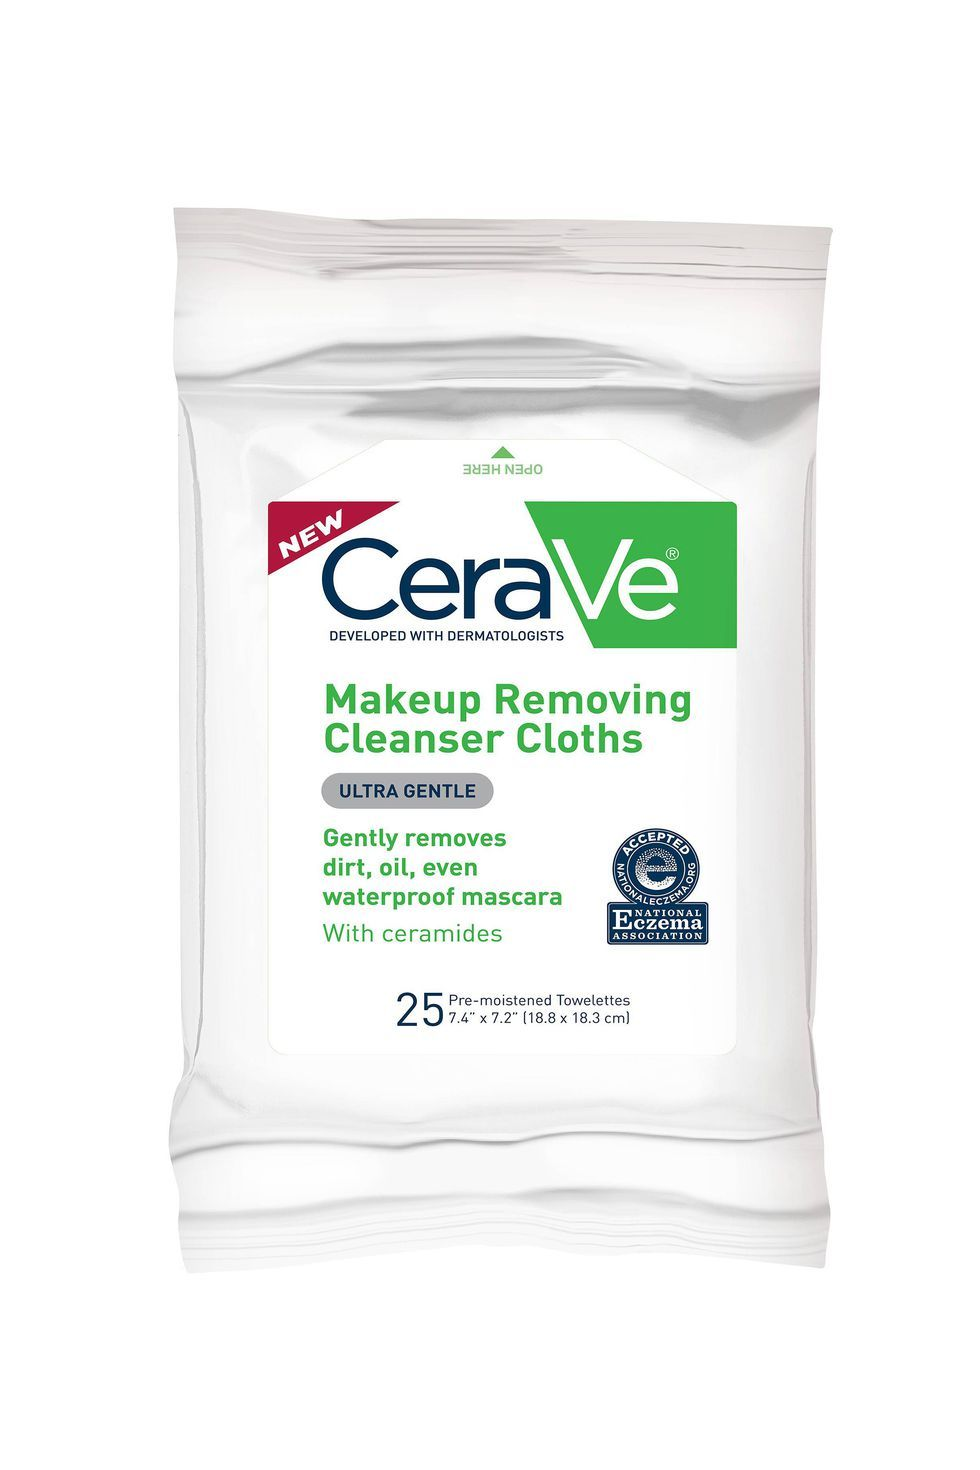 Vitamin C Brightening Glow Micellar Wipes Makeup Remover Oil Based Makeup Remover Best Makeup Remover